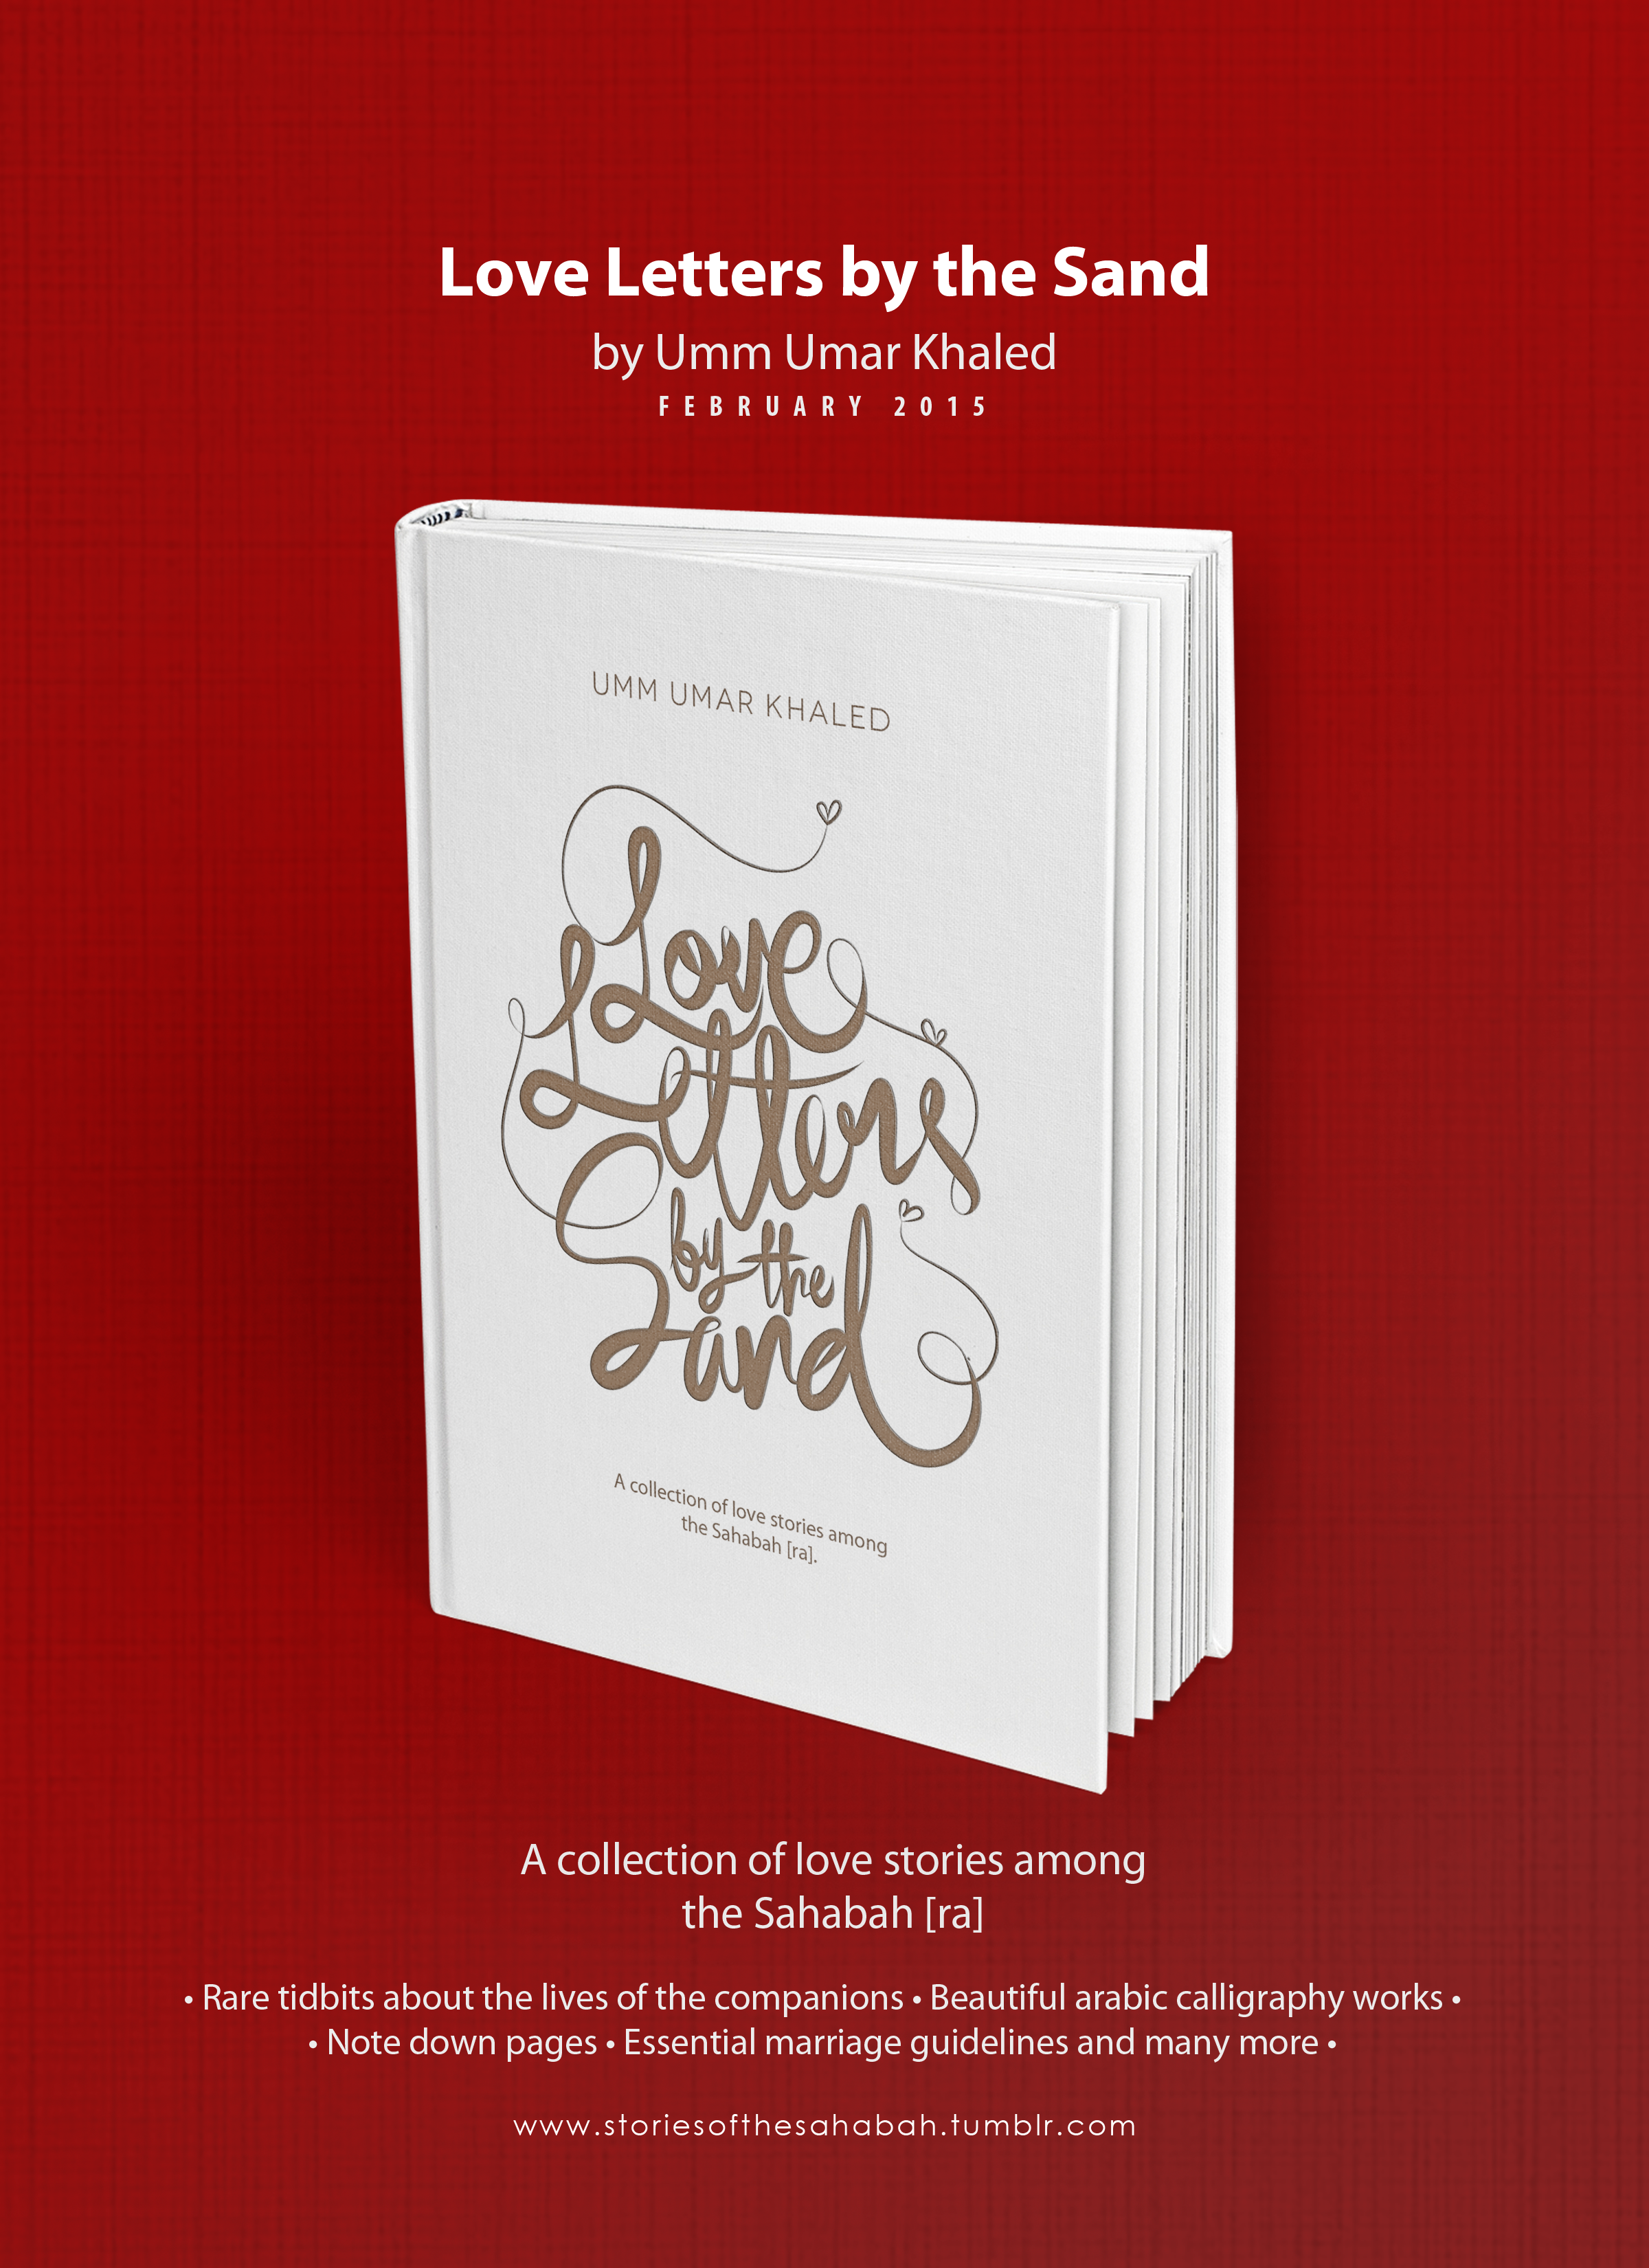 loveletters this book is filled with specially selected stories among the lives of the sahabah radiyallahu anhum on their marriages how they coped up with